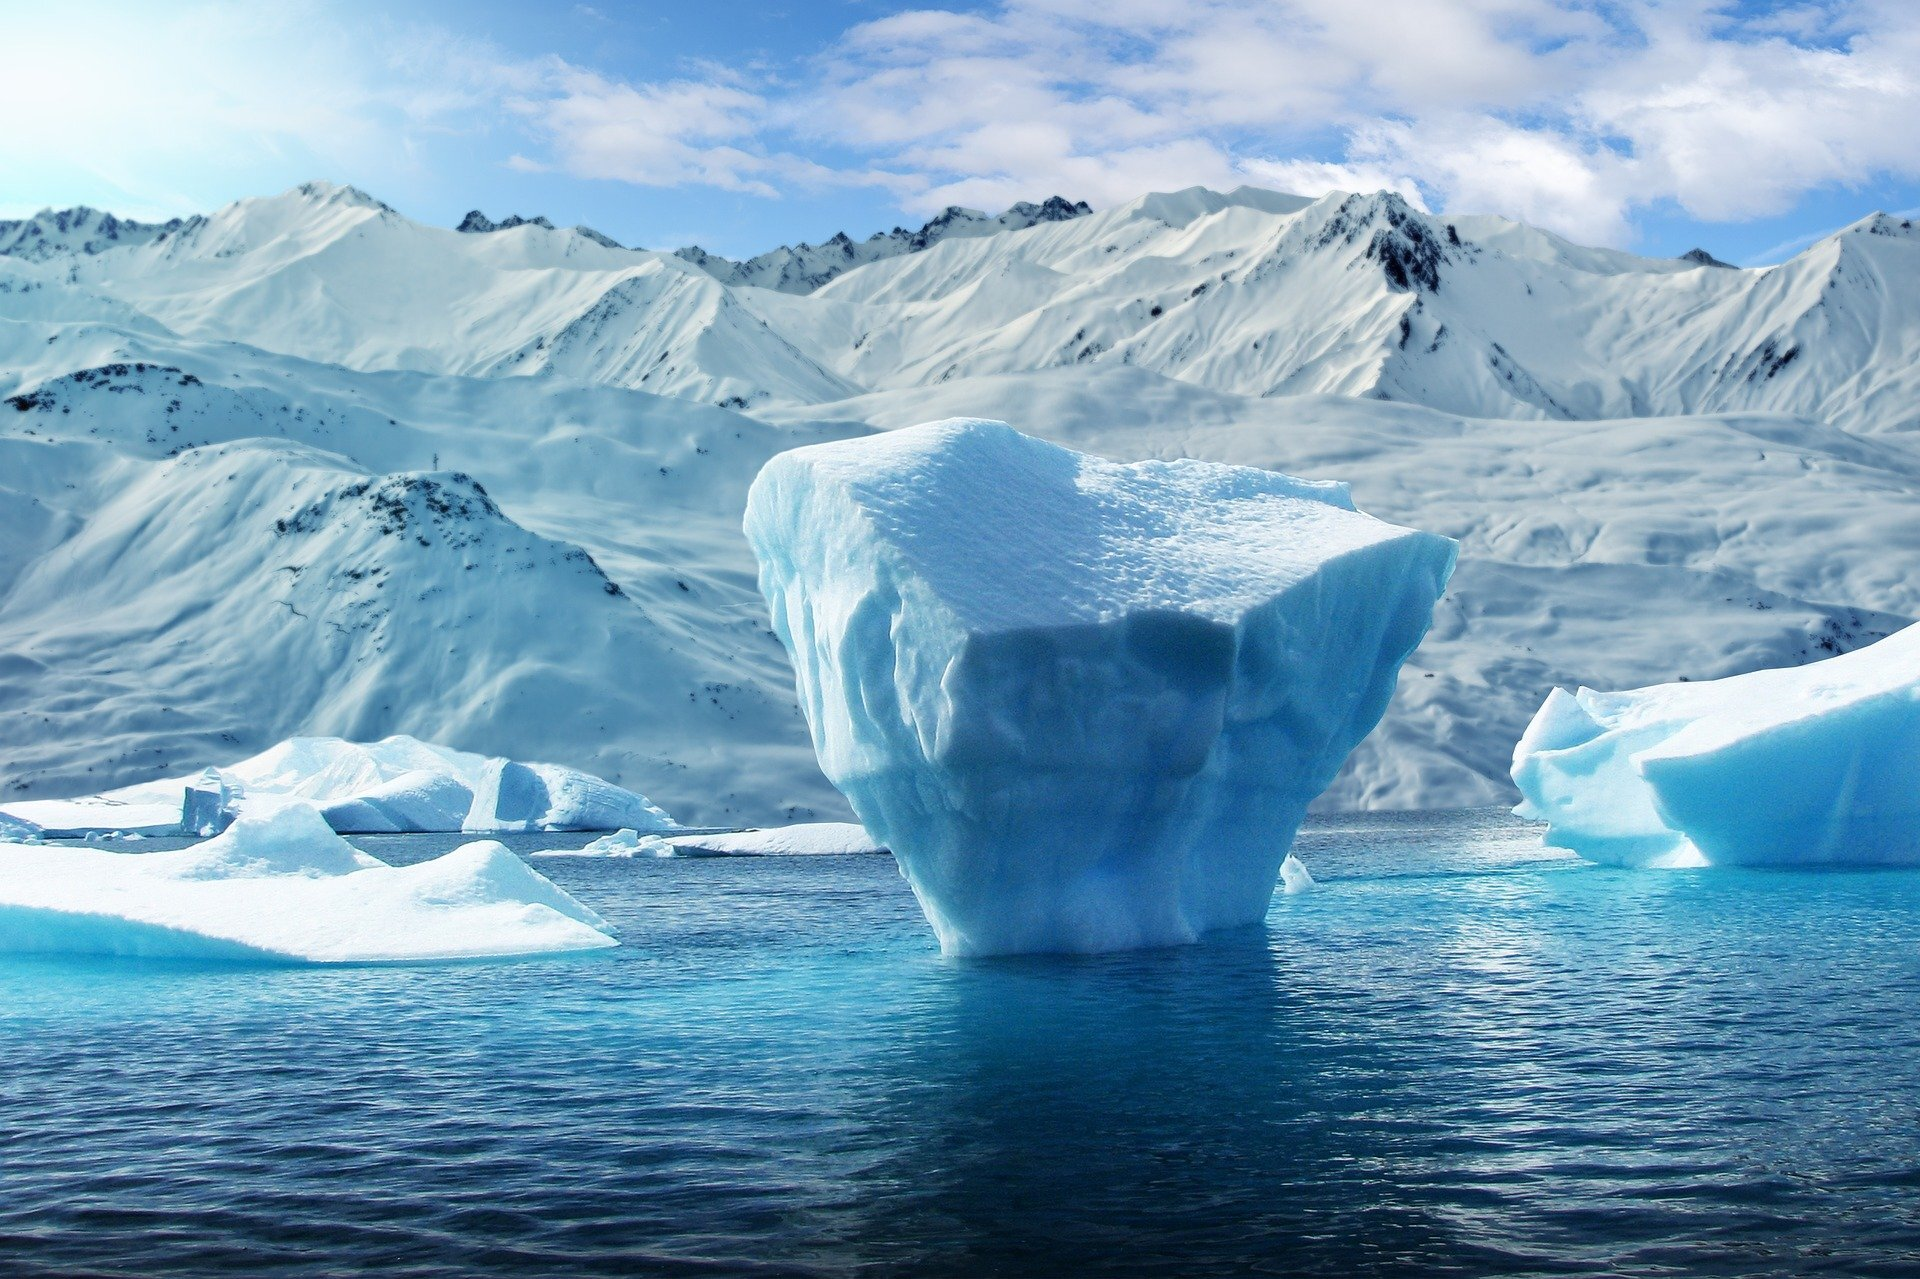 Icebergs as tall as Eiffel Tower once flowed past Outer Banks to Florida, study finds